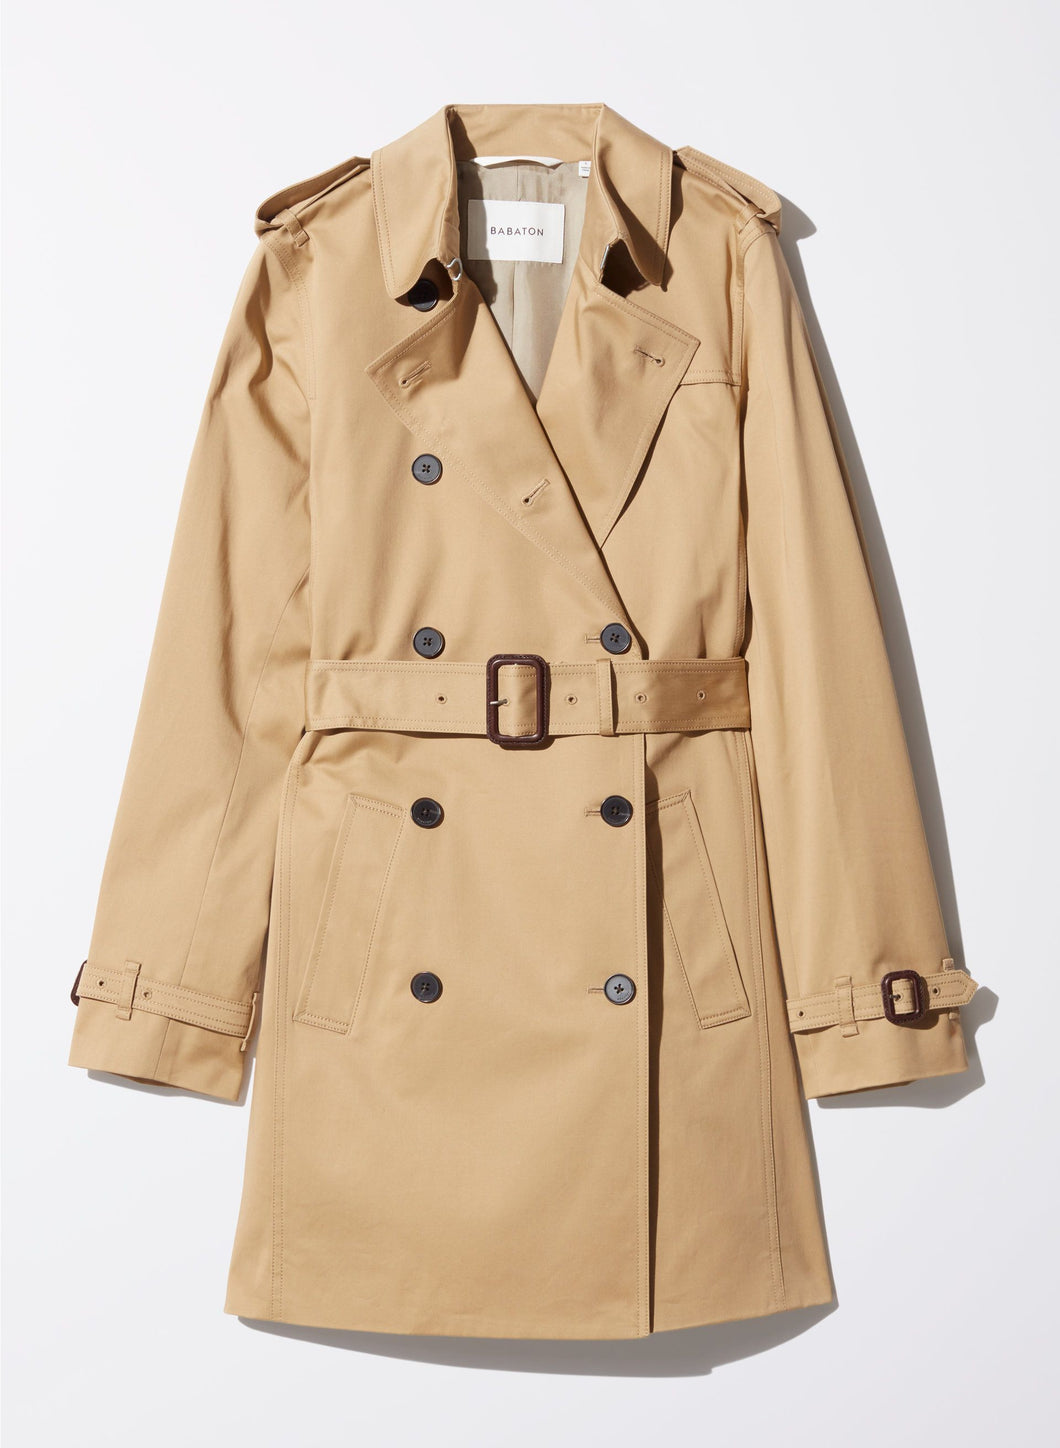 Babaton Oliver Trench - Size S